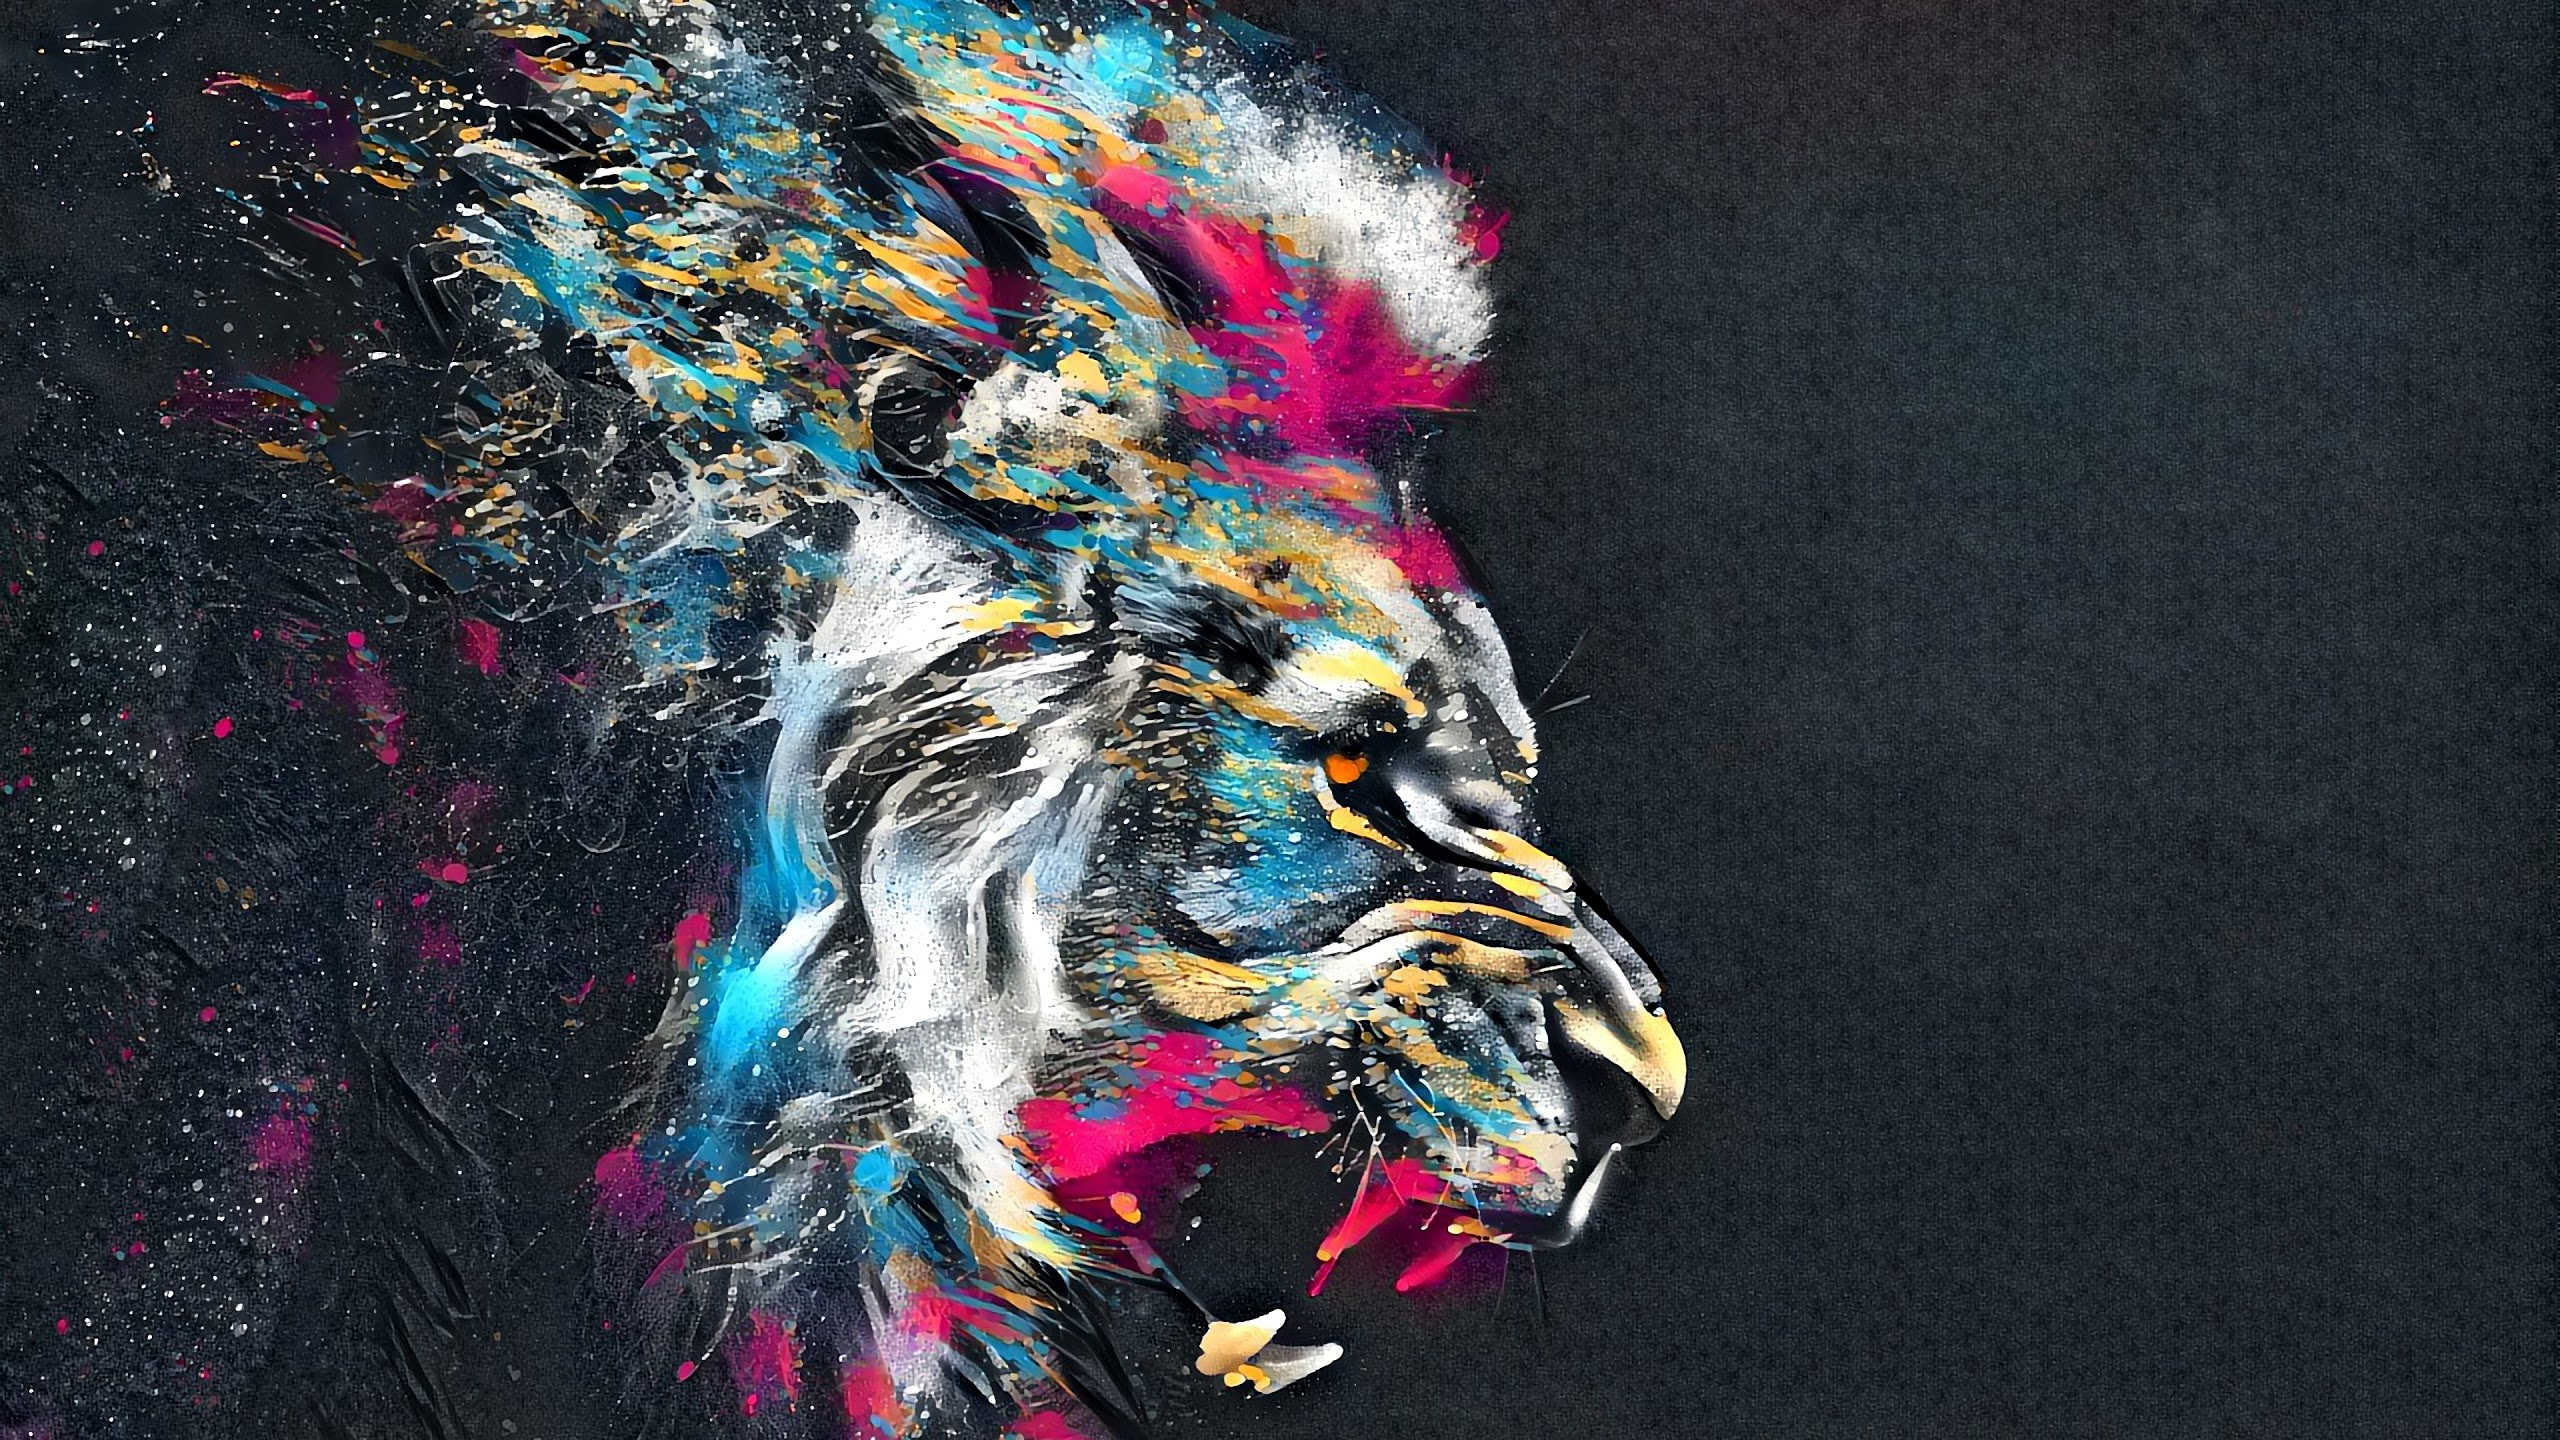 Colorful Lion Abstract Art - HD Wallpaper